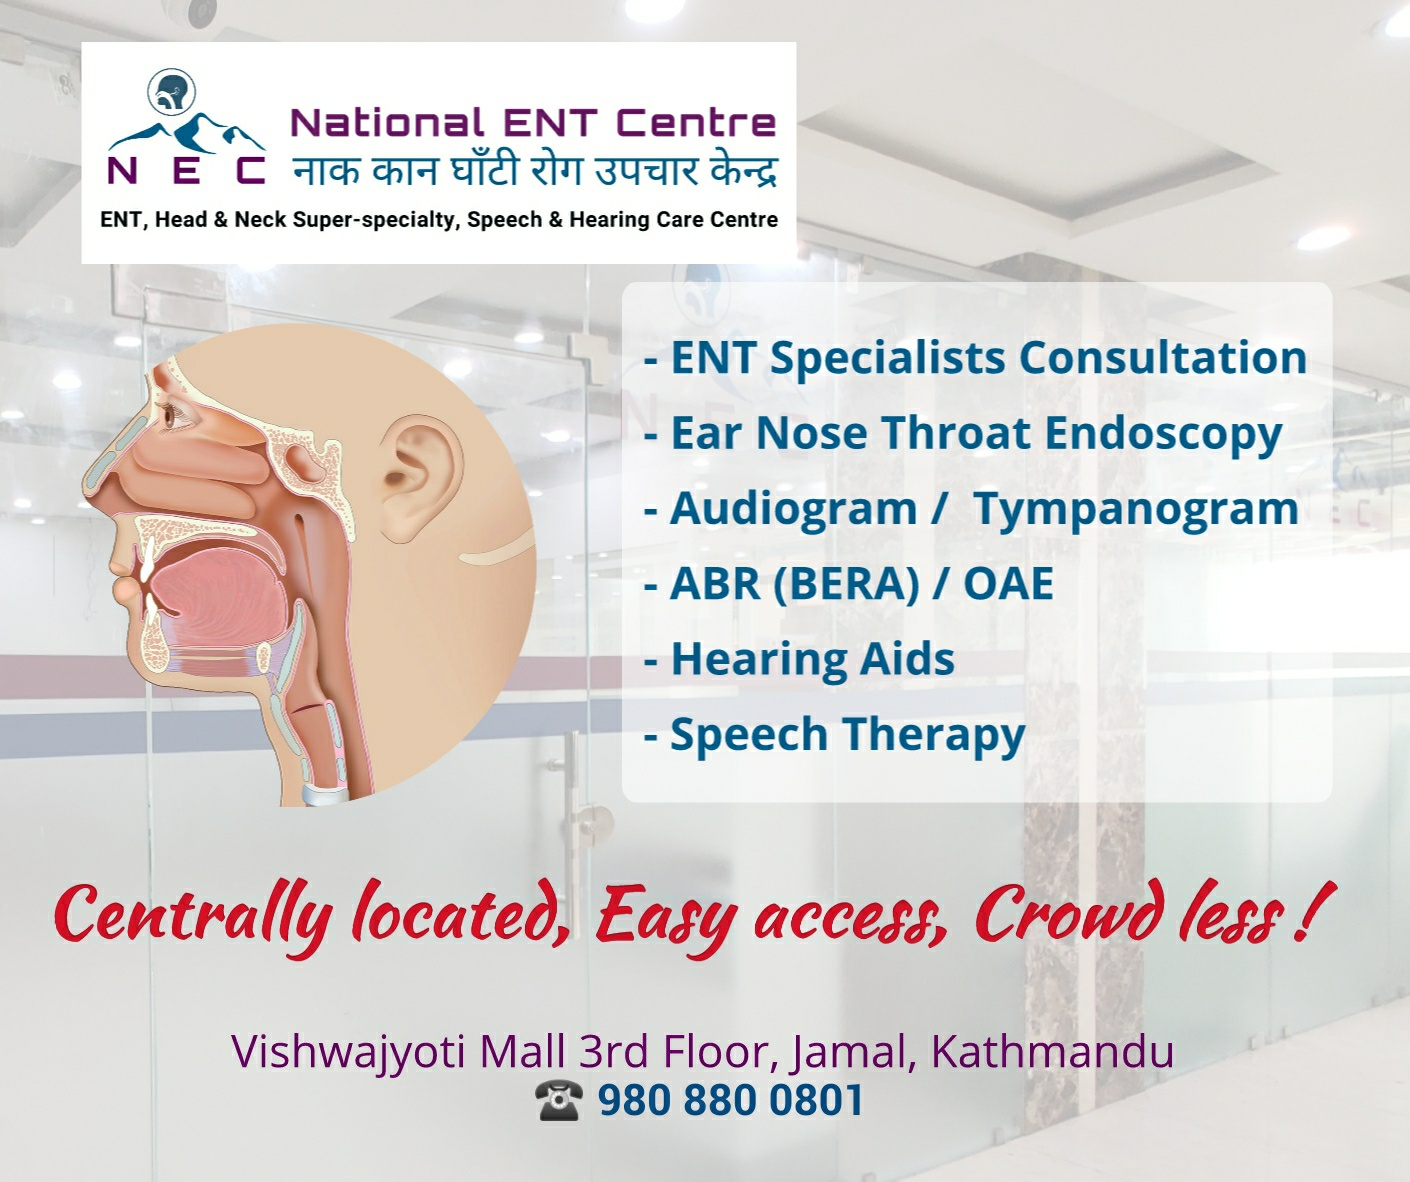 national ent center